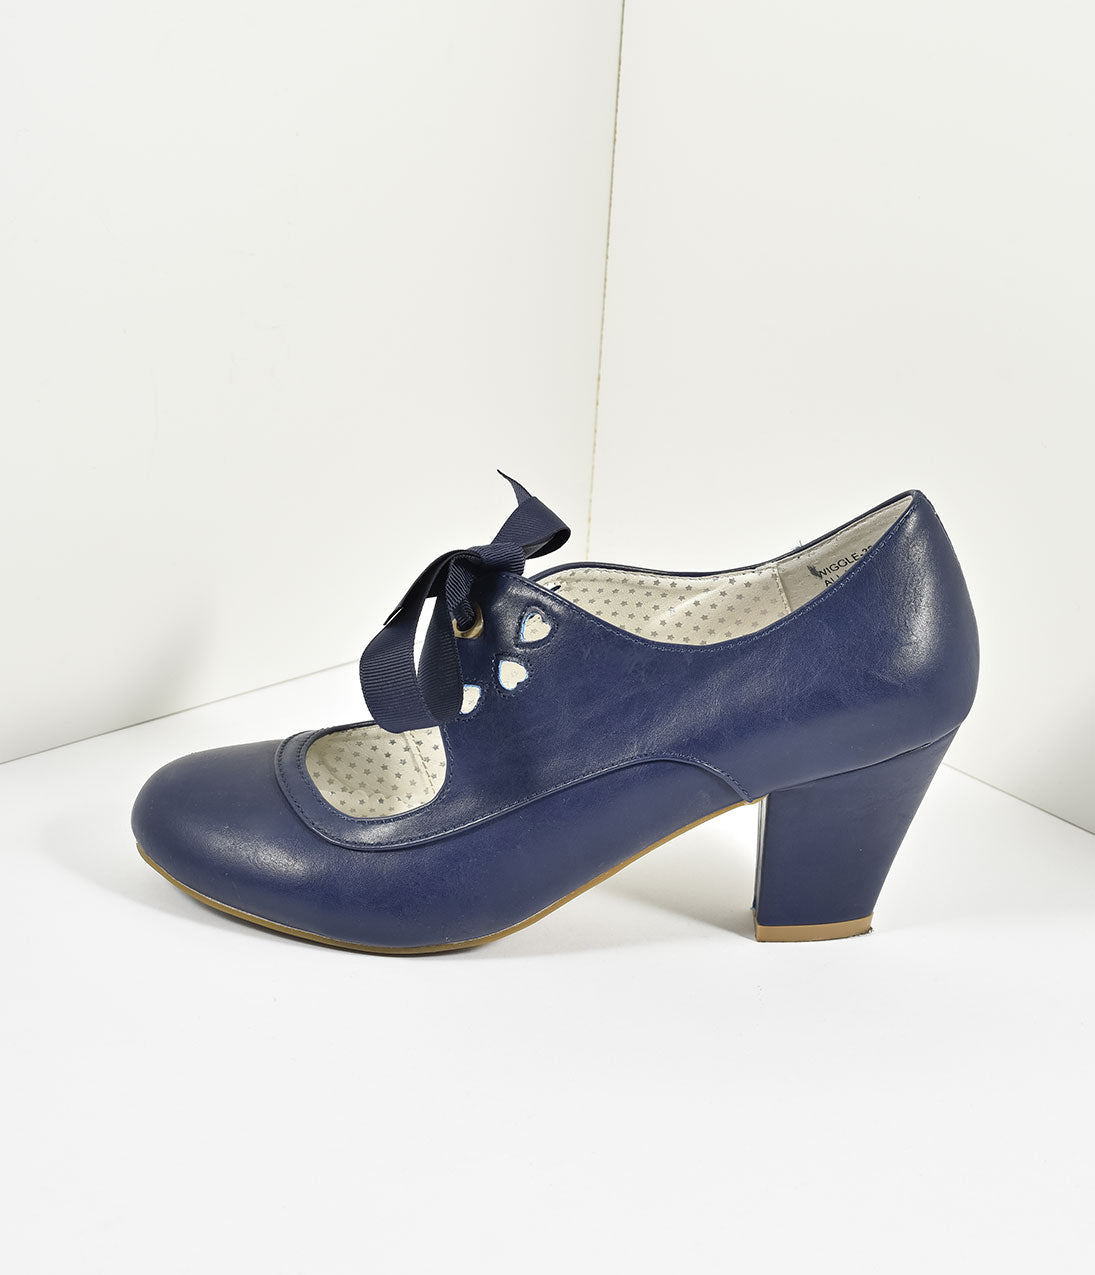 1940s Womens Footwear Vintage Style Navy Blue Leatherette Mary Jane Bow Wiggle Heels $58.00 AT vintagedancer.com